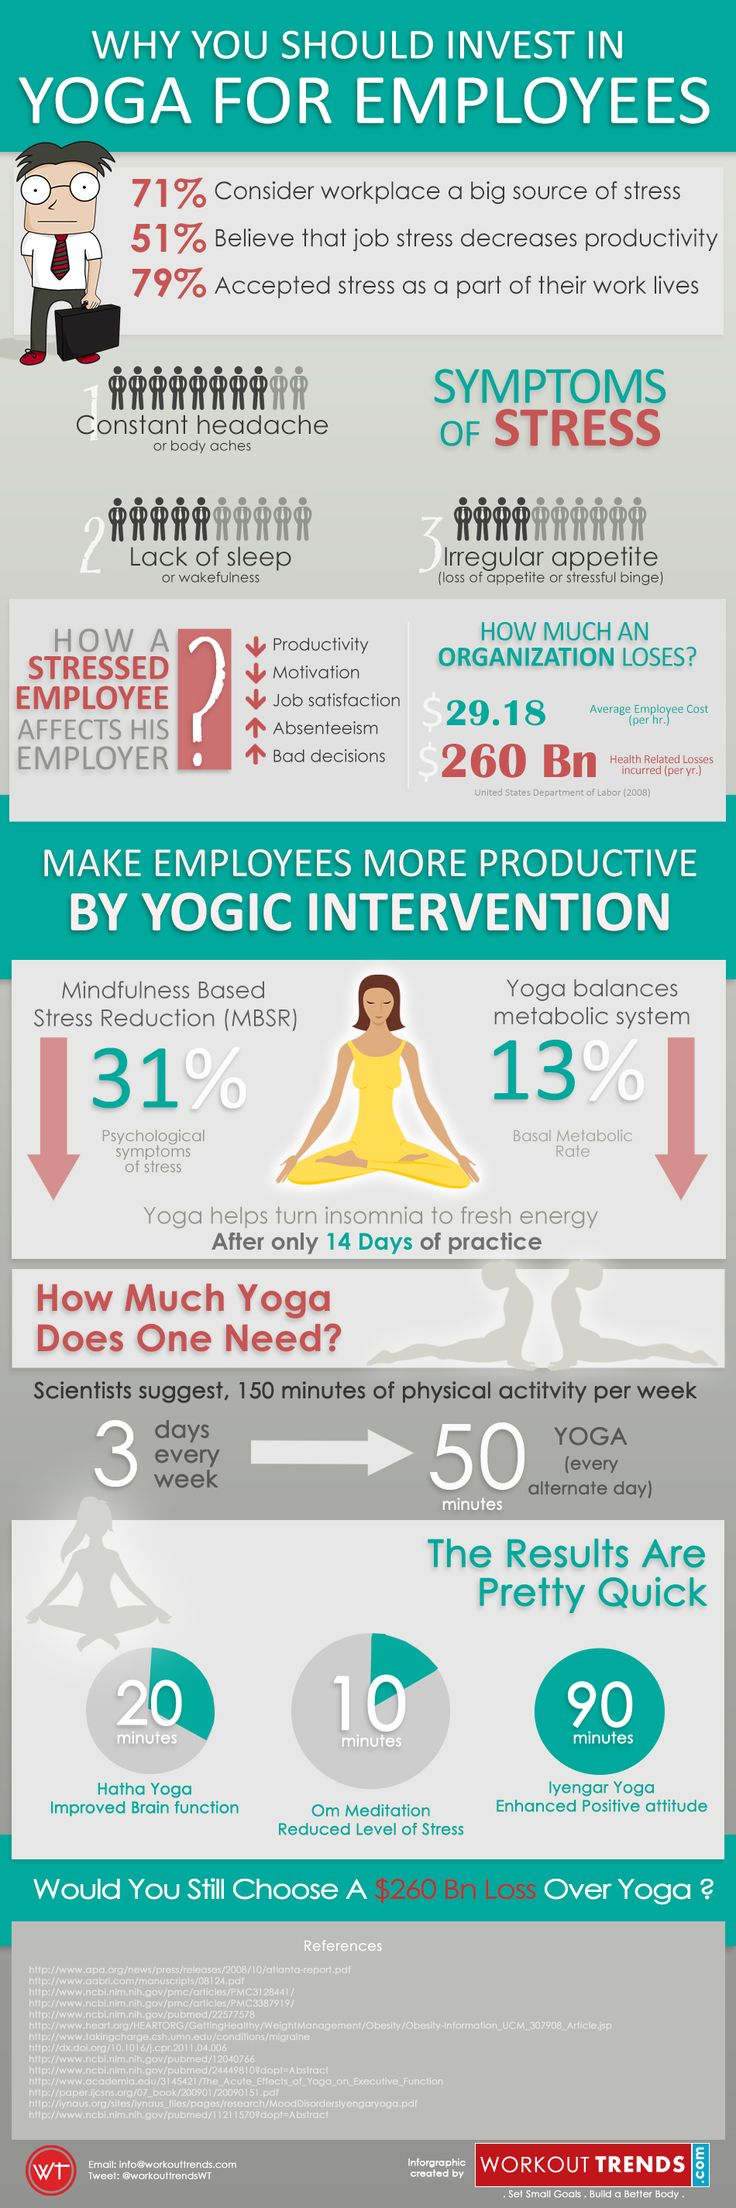 Why You Should Invest In Yoga For Employees Infographic - The Girl in Yoga Pants